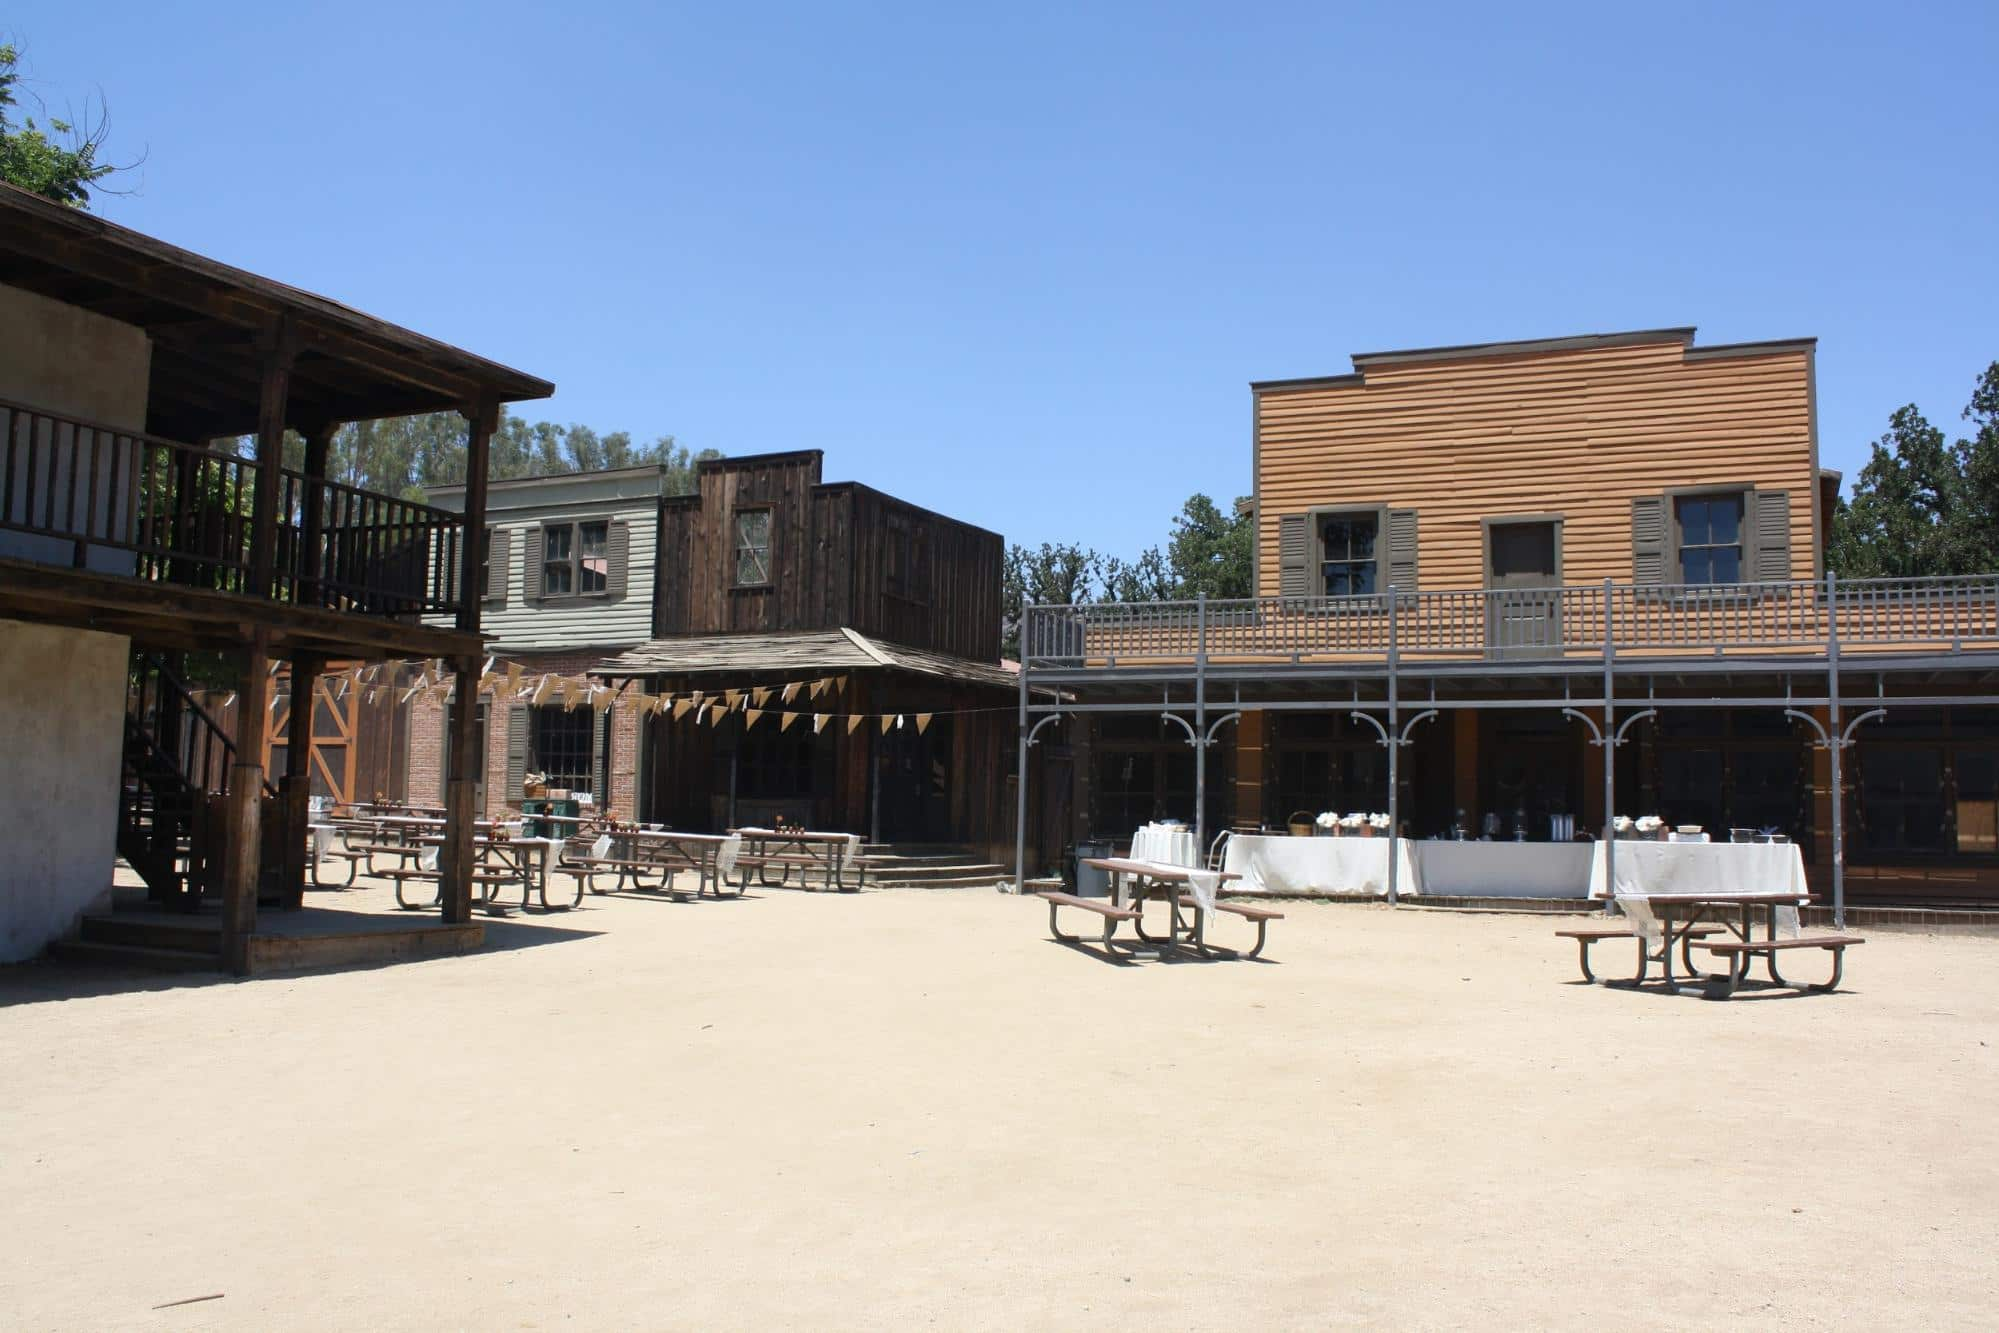 Child Labor Laws - Child Actors - Paramount Ranch - StudioBinder